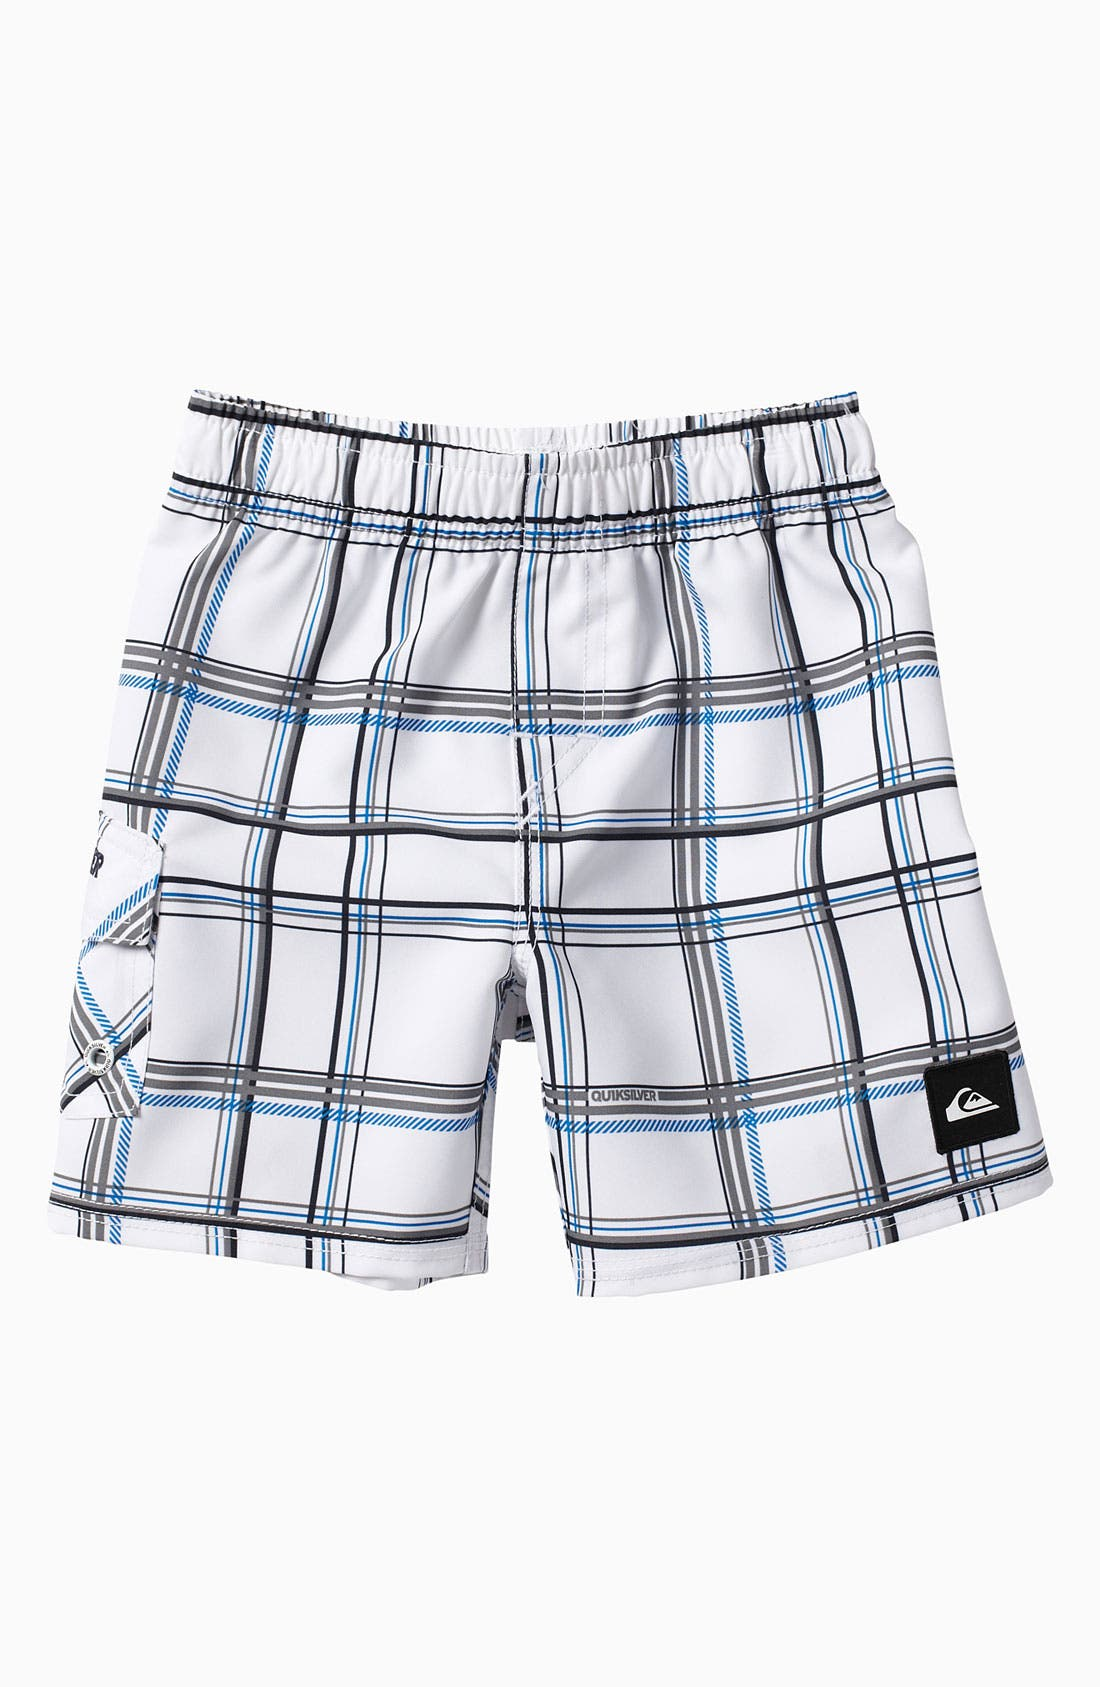 Alternate Image 1 Selected - Quiksilver 'Paid In Full' Volley Swim Shorts (Little Boys)